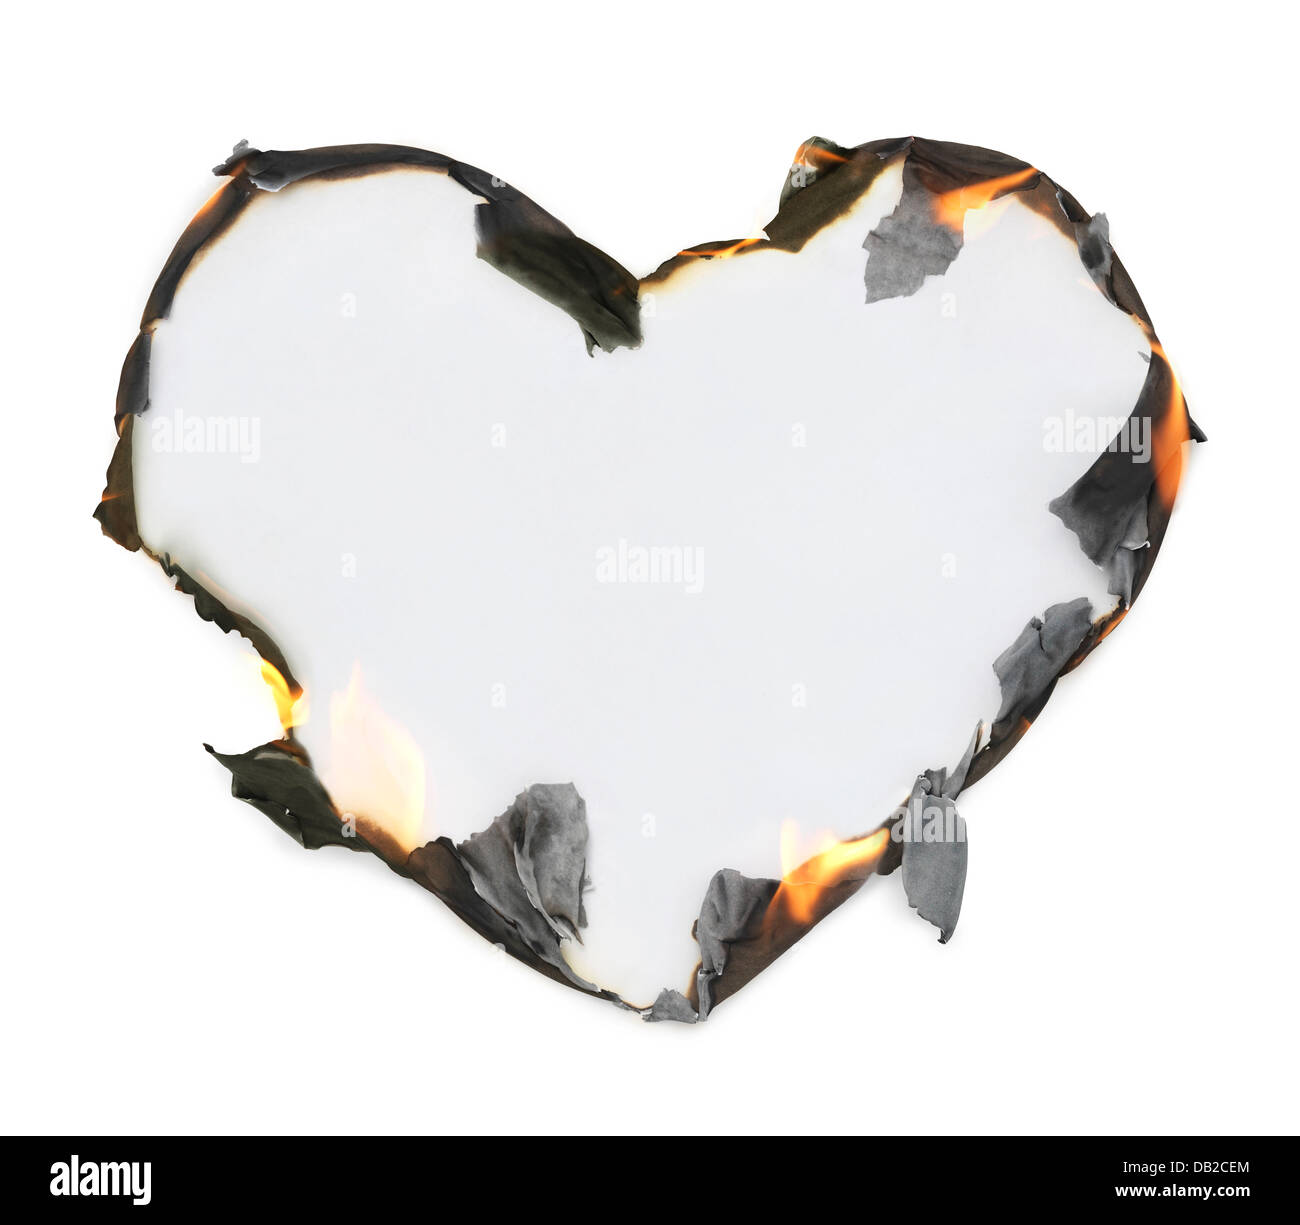 Blank heart shaped paper with burning edges, artistic conceptual ...